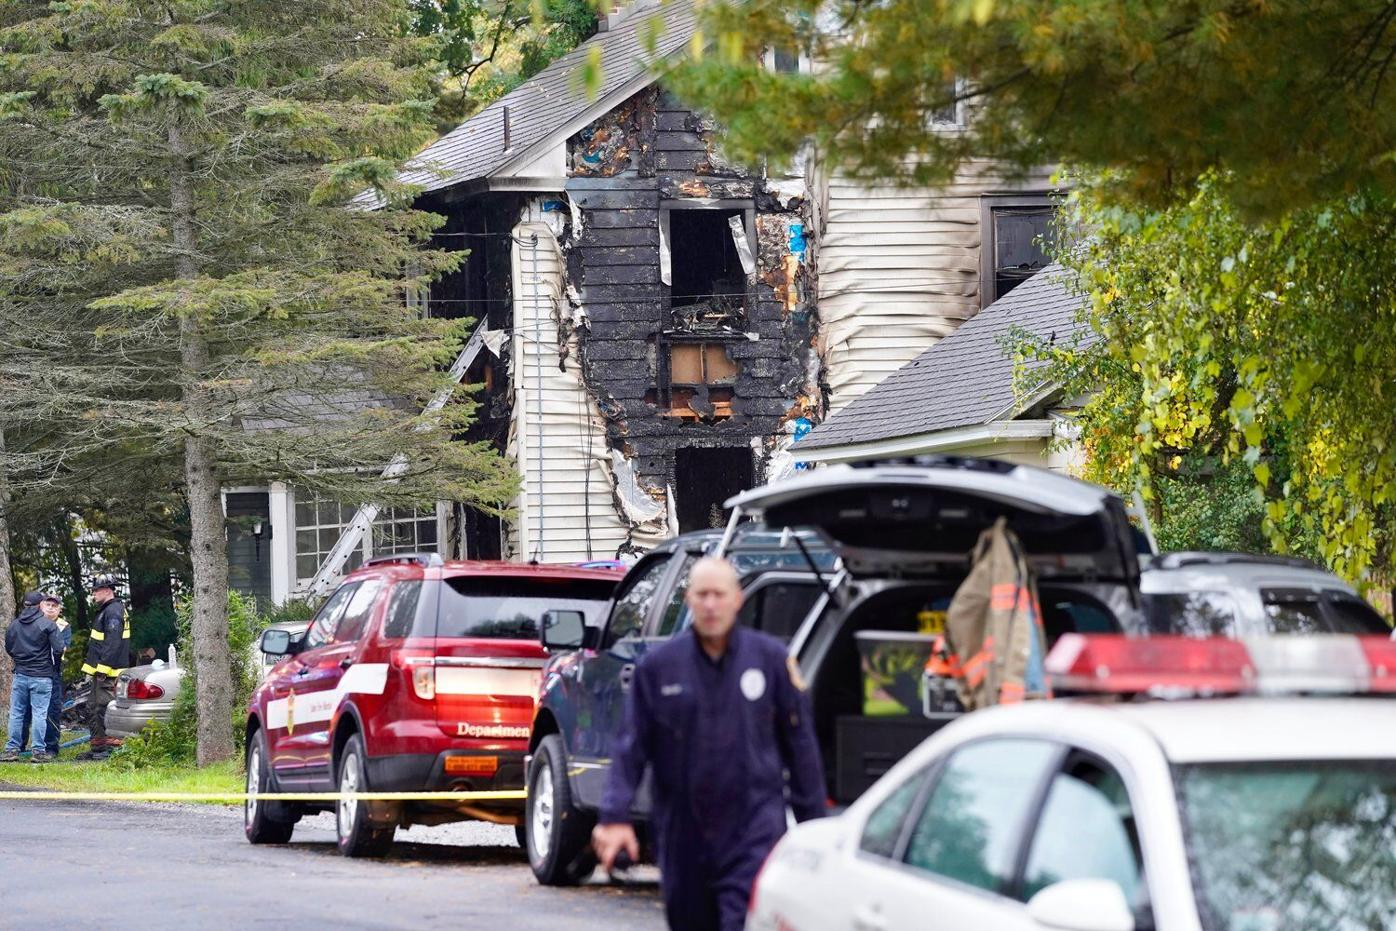 Couple killed in overnight Pittsfield house fire 'were really great neighbors'